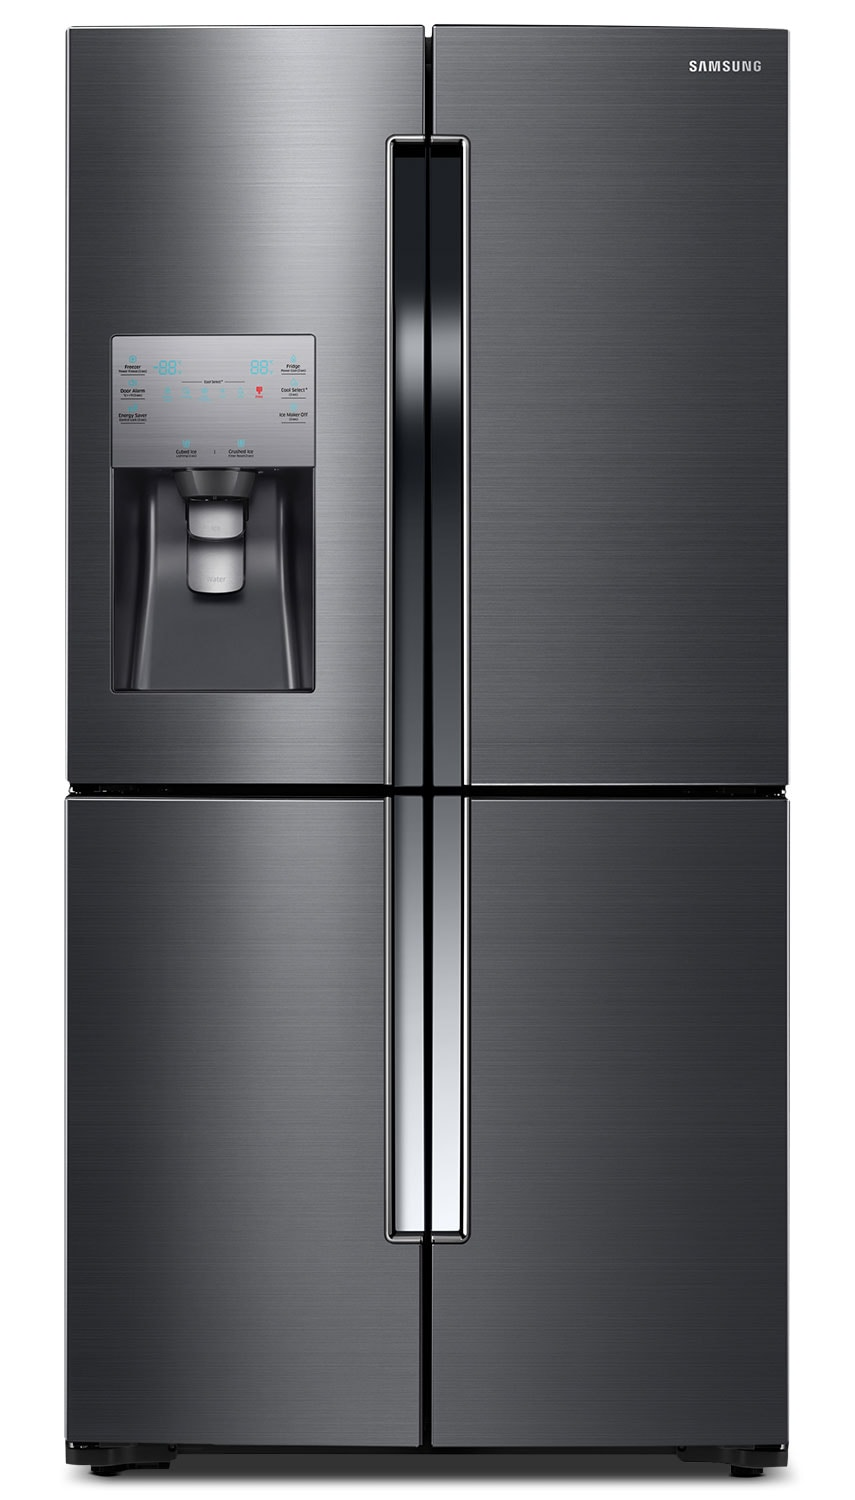 Refrigerators and Freezers - Samsung Black Stainless Steel French Door Refrigerator (22.5 Cu. Ft.) - RF23J9011SG/AA